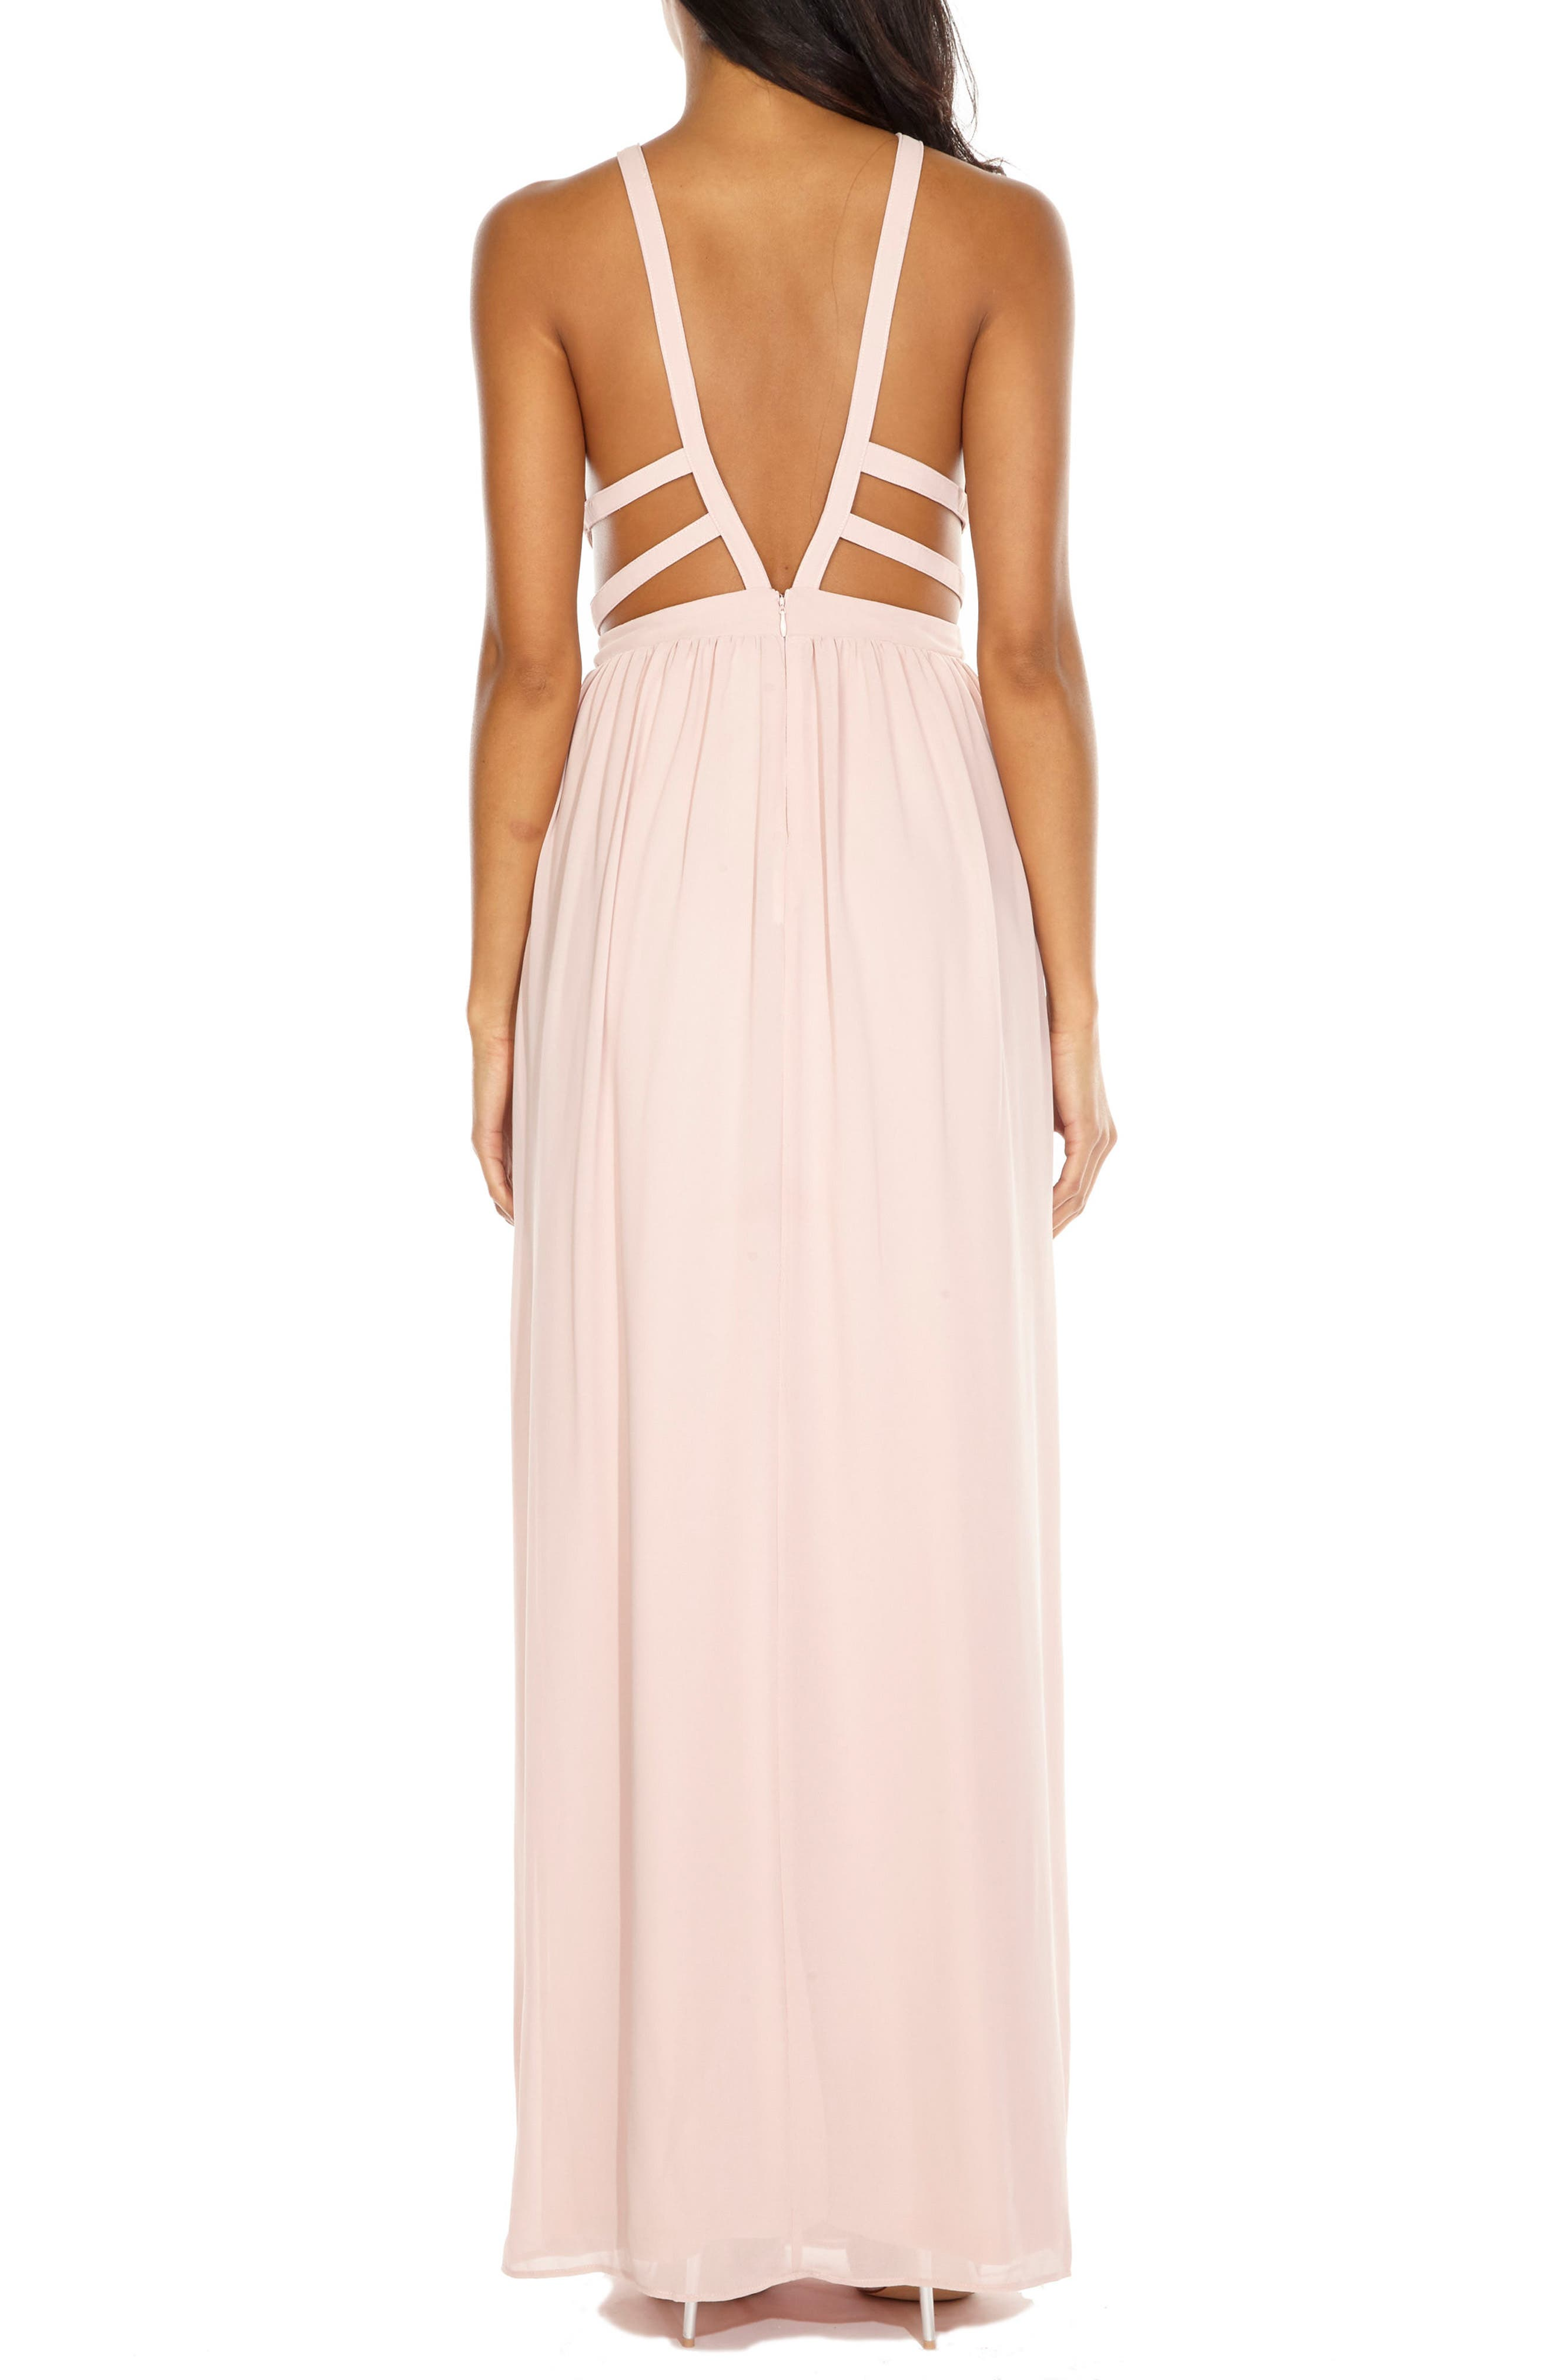 Evanthe Cutout Chiffon Gown,                             Alternate thumbnail 2, color,                             Pearl Pink